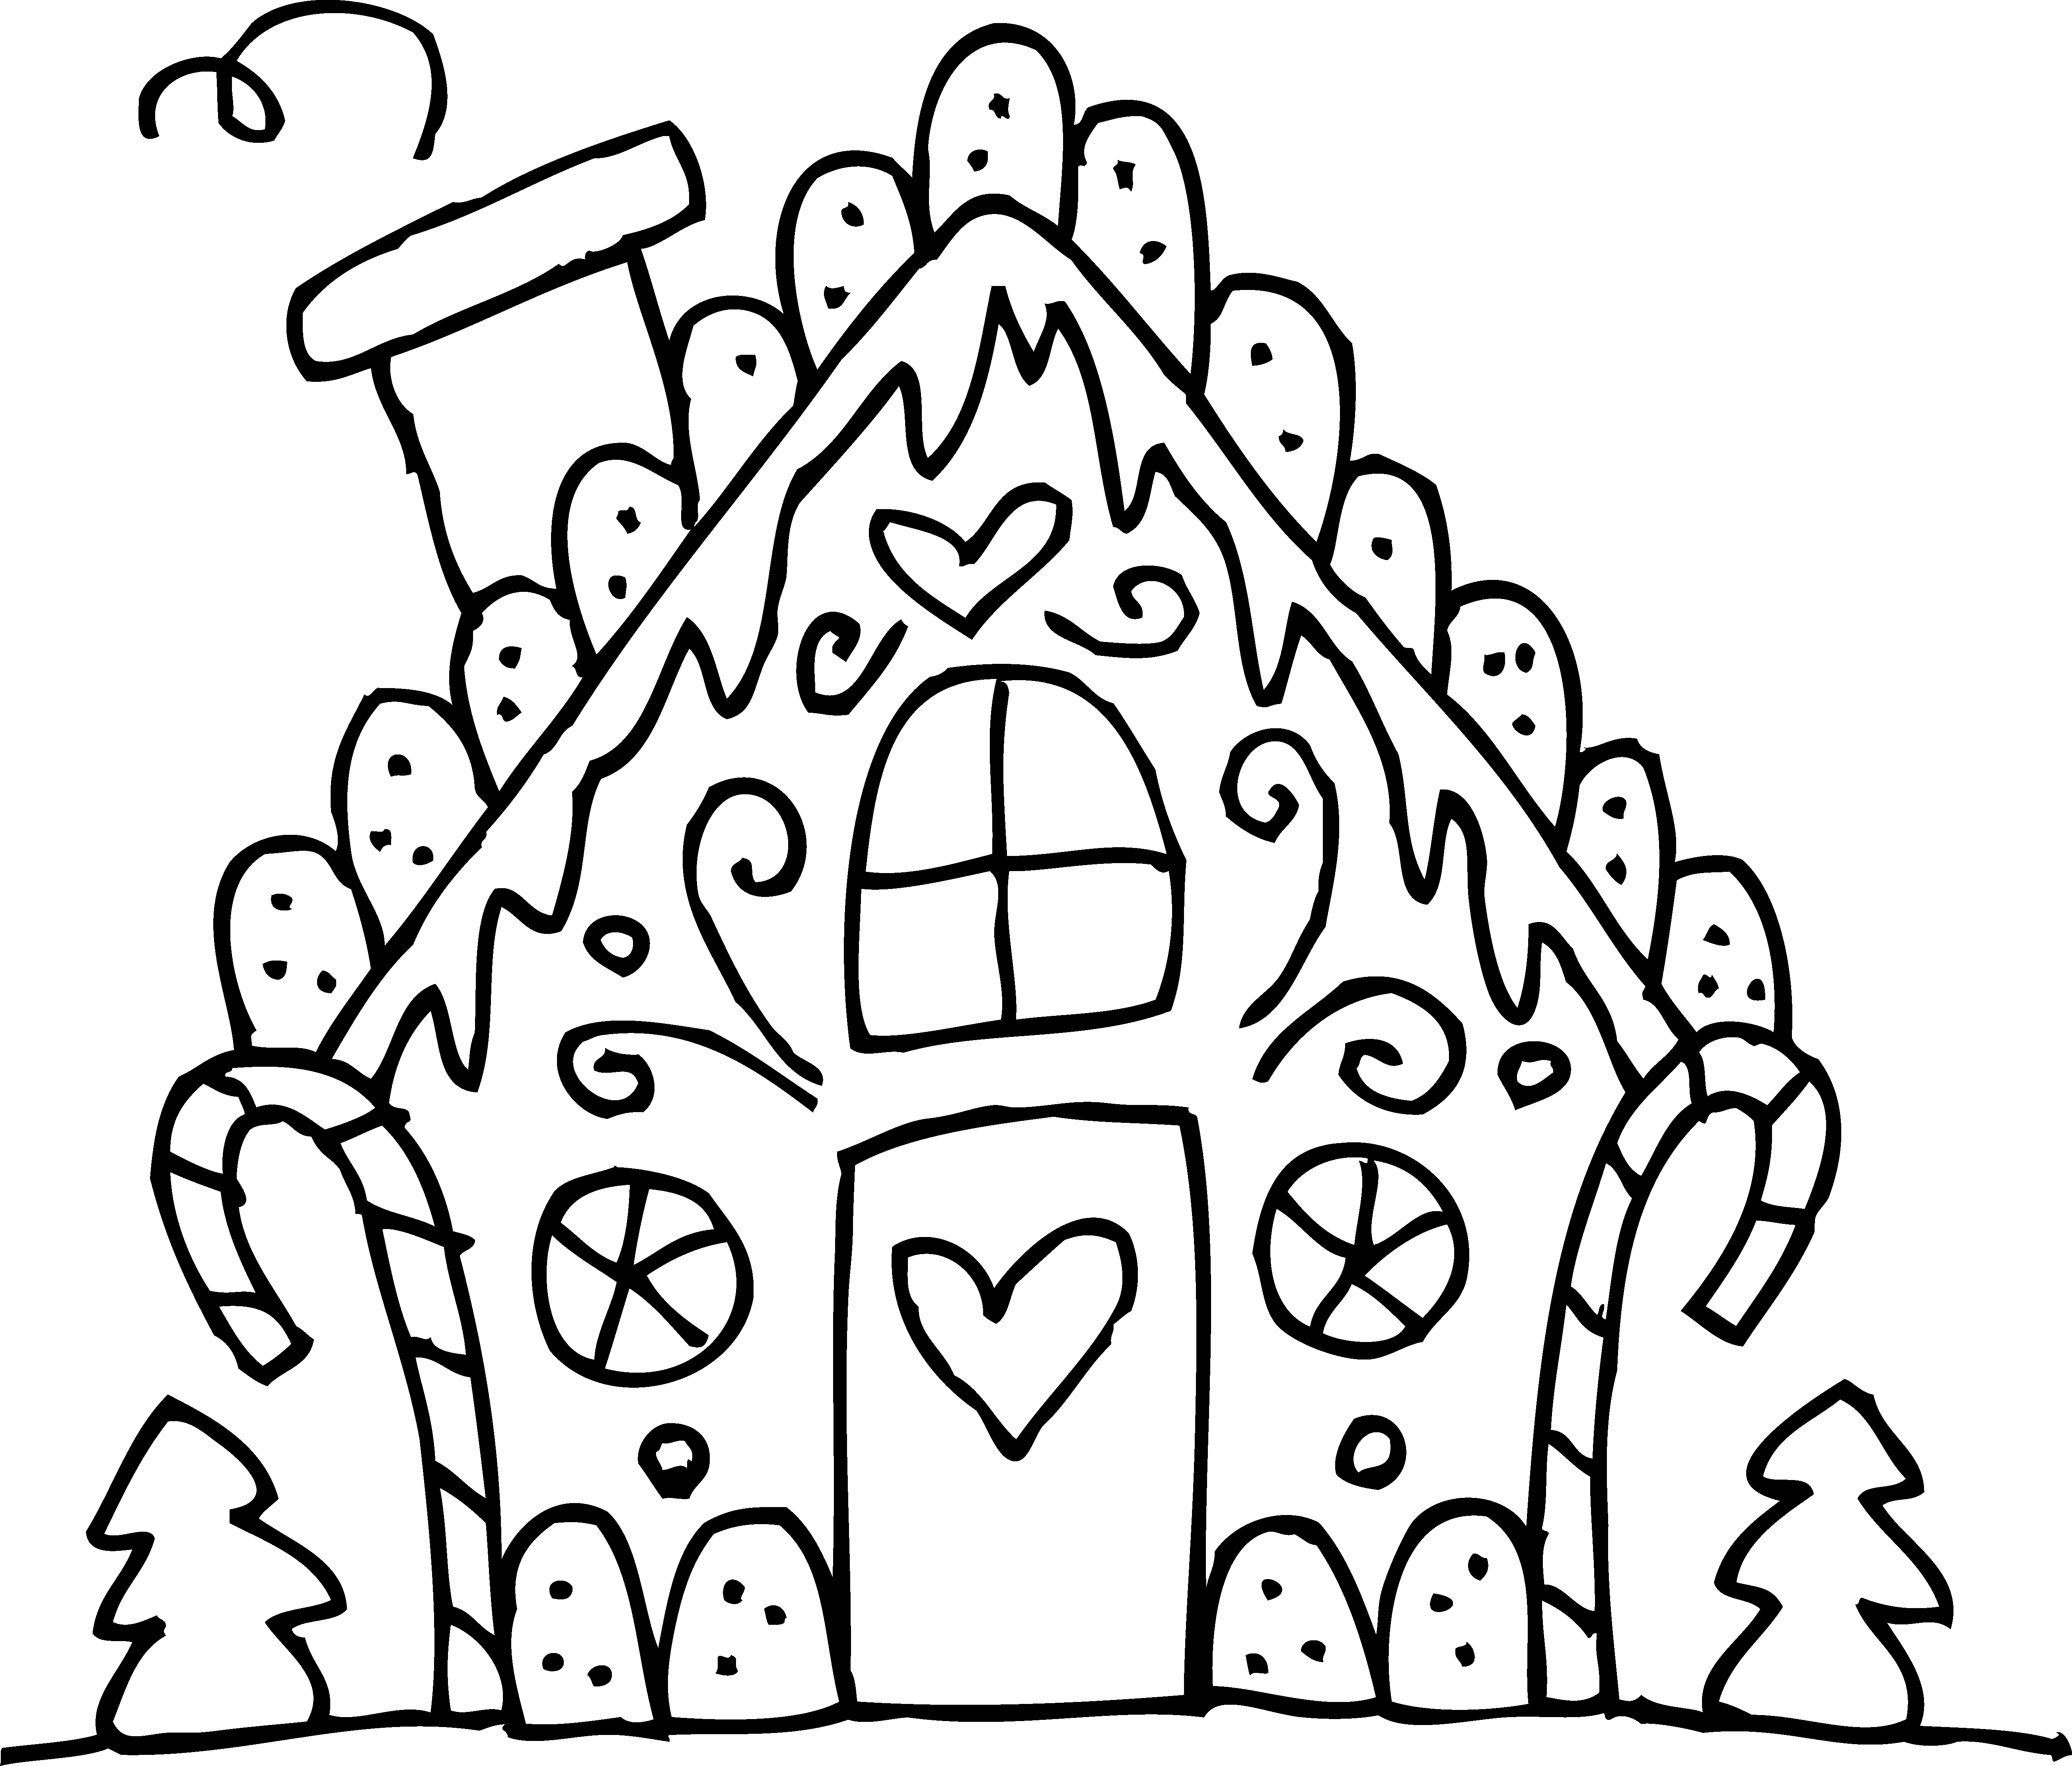 Gingerbread house clipart free jpg royalty free Gingerbread House Coloring Pages Printable - Printable Coloring ... jpg royalty free